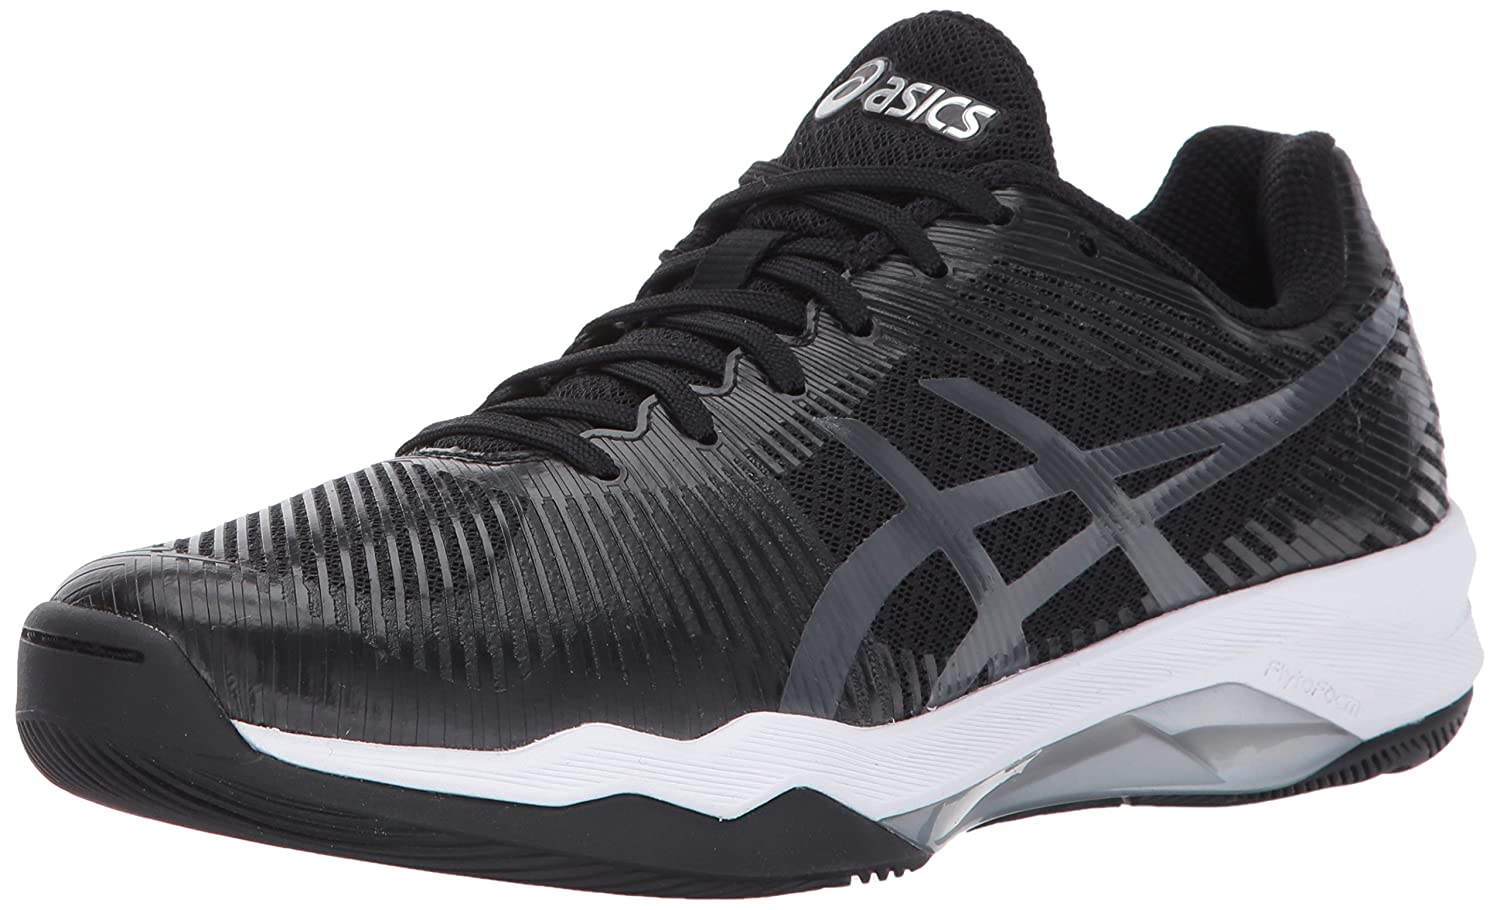 ASICS Women's Volley Elite FF Volleyball Shoe B01N07HEVA 12 B(M) US|Black/Dark Grey/White